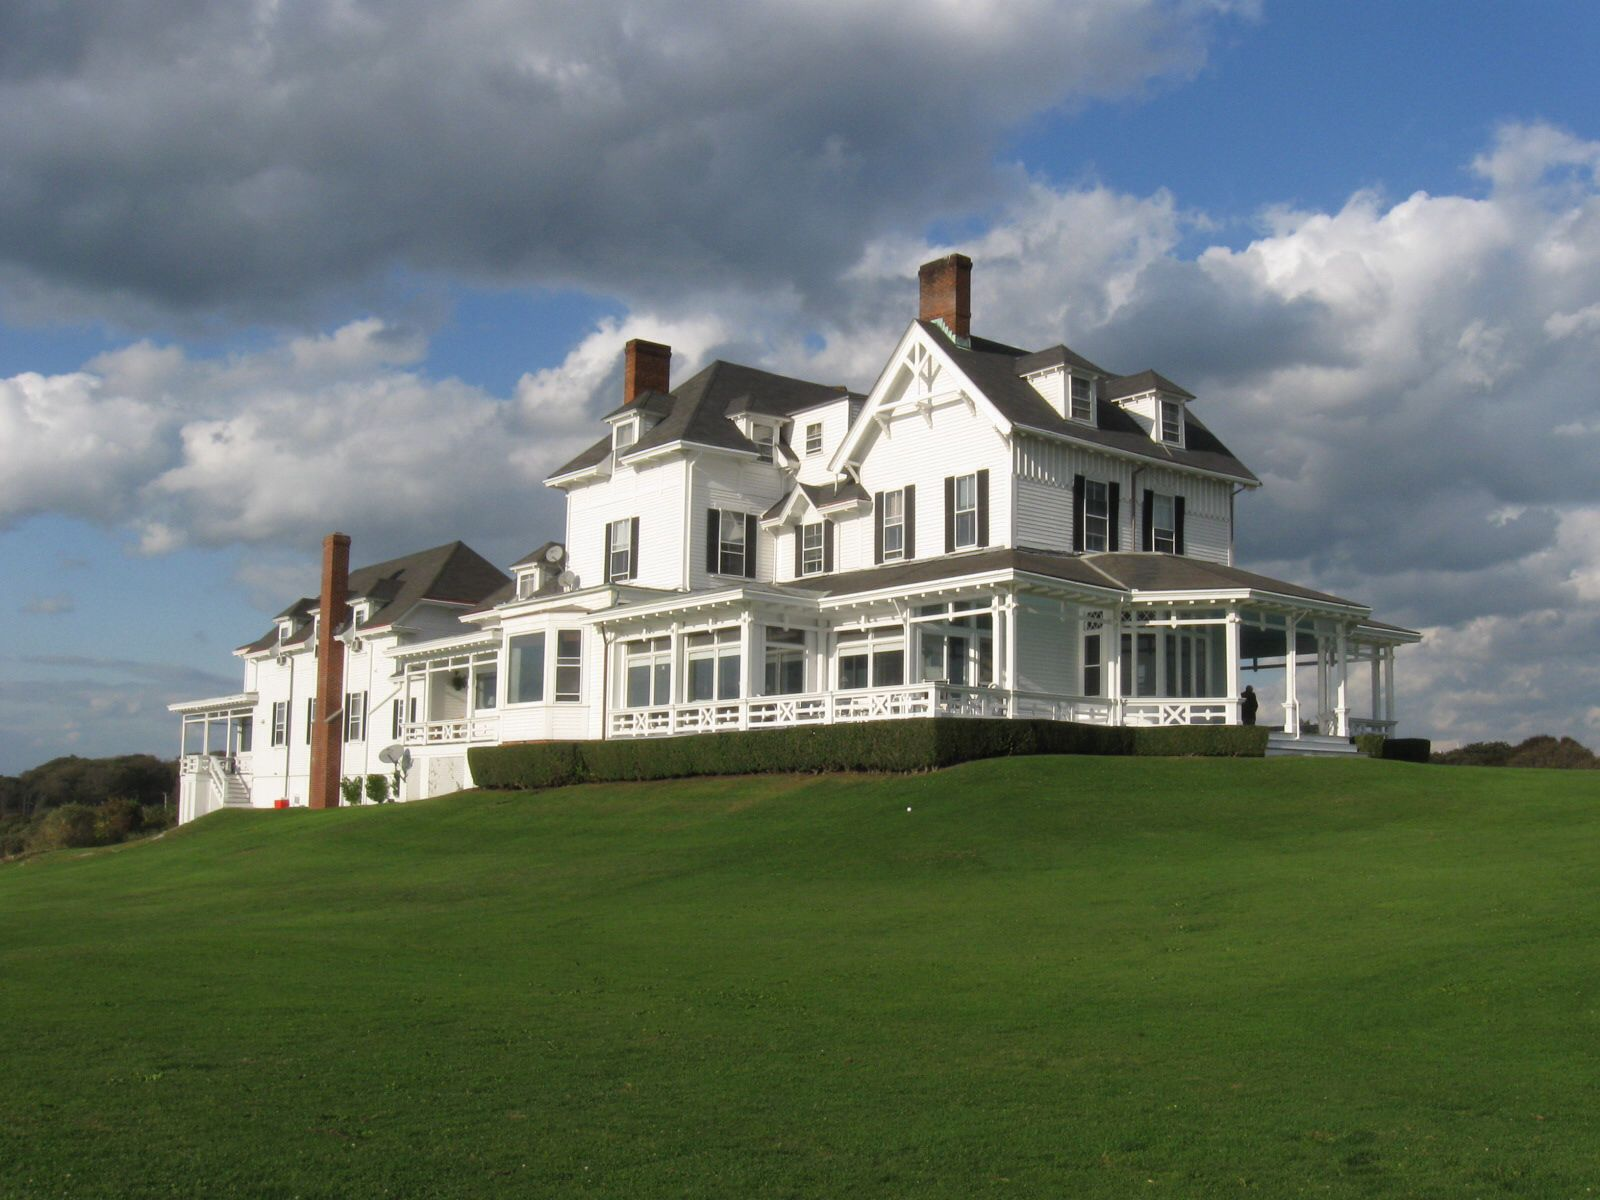 Beach house from the movie Evening. The Ledges, Newport RI